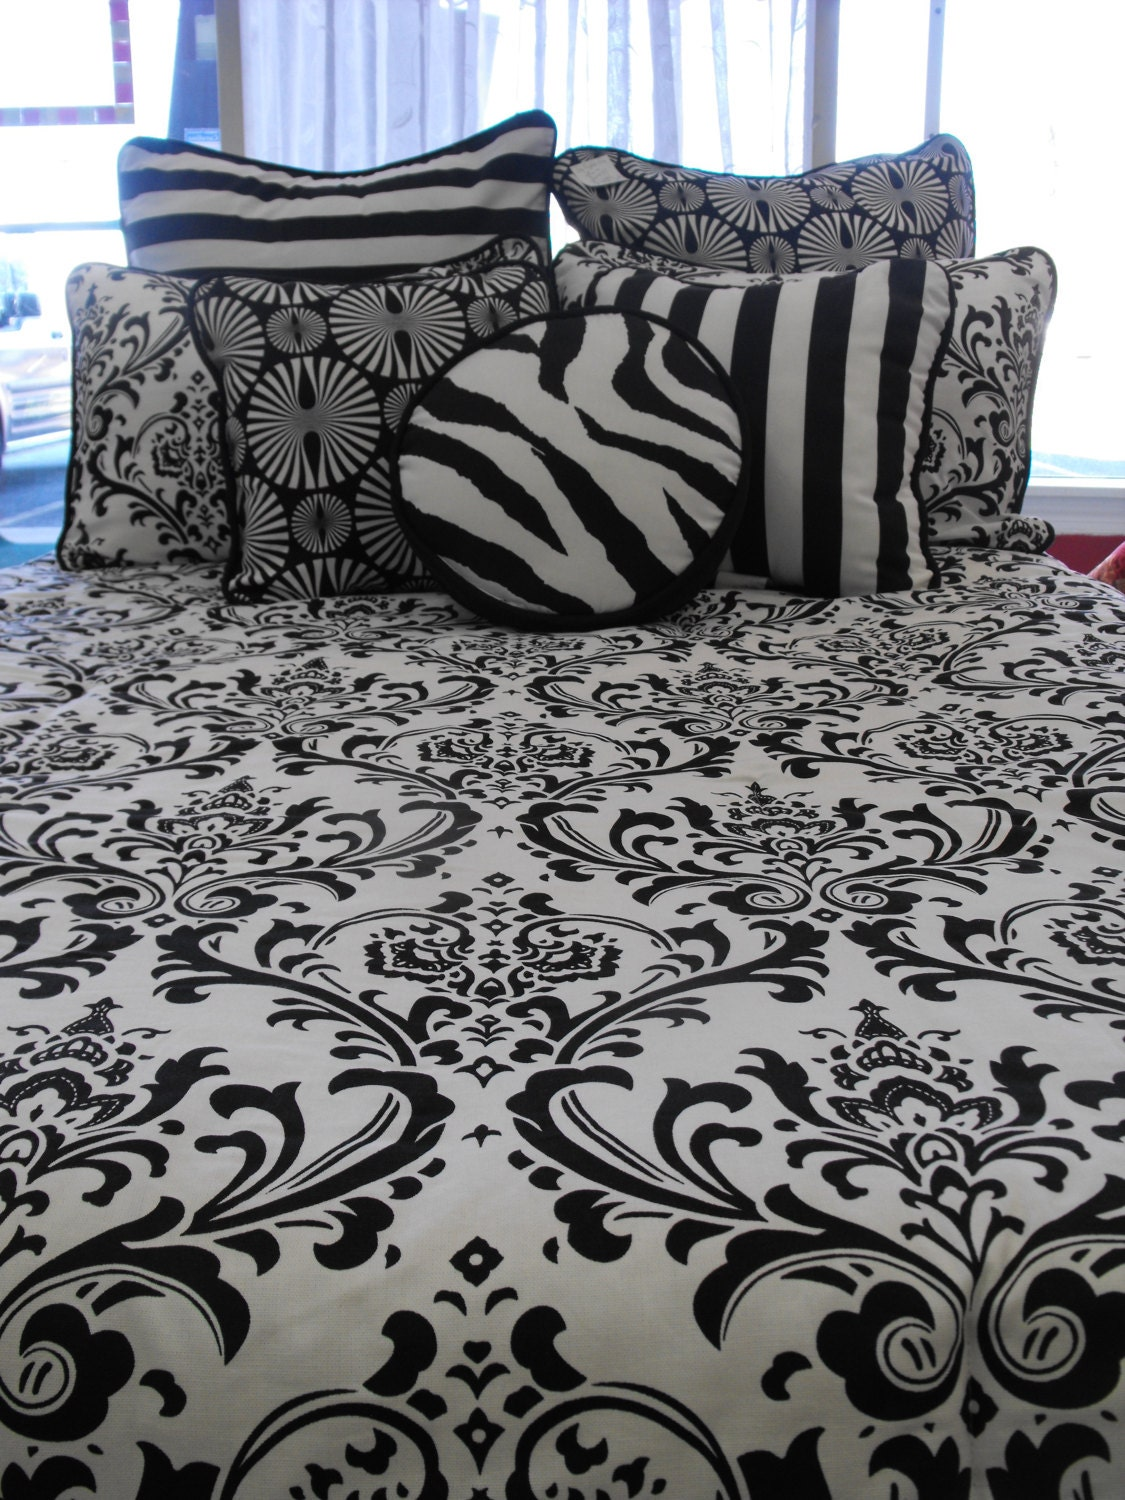 dorm comforters bed bedding designer set sets custom comforter fur for luxury pin navy you white and